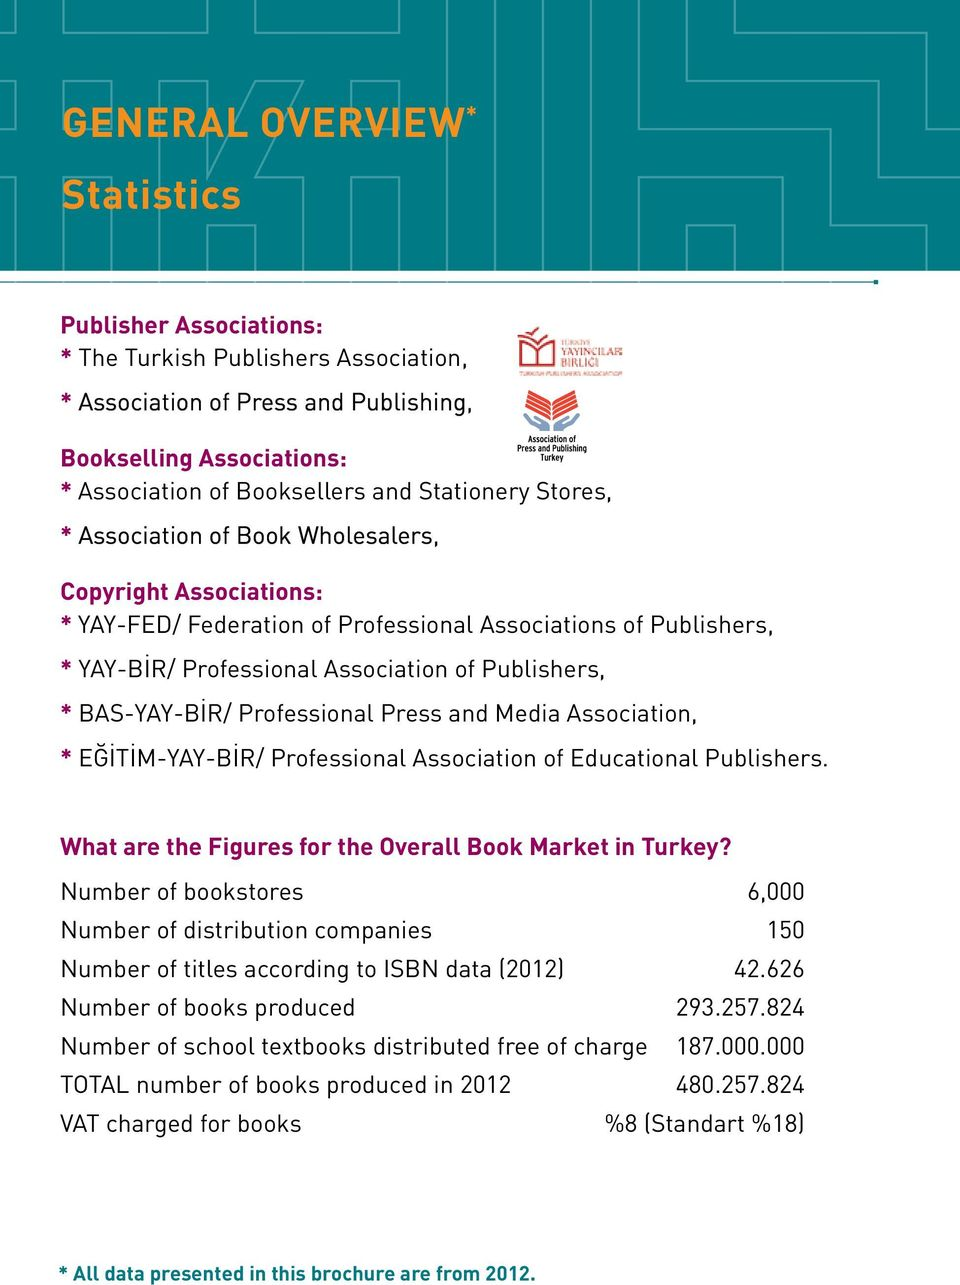 BAS-YAY-BİR/ Professional Press and Media Association, * EĞİTİM-YAY-BİR/ Professional Association of Educational Publishers. What are the Figures for the Overall Book Market in Turkey?